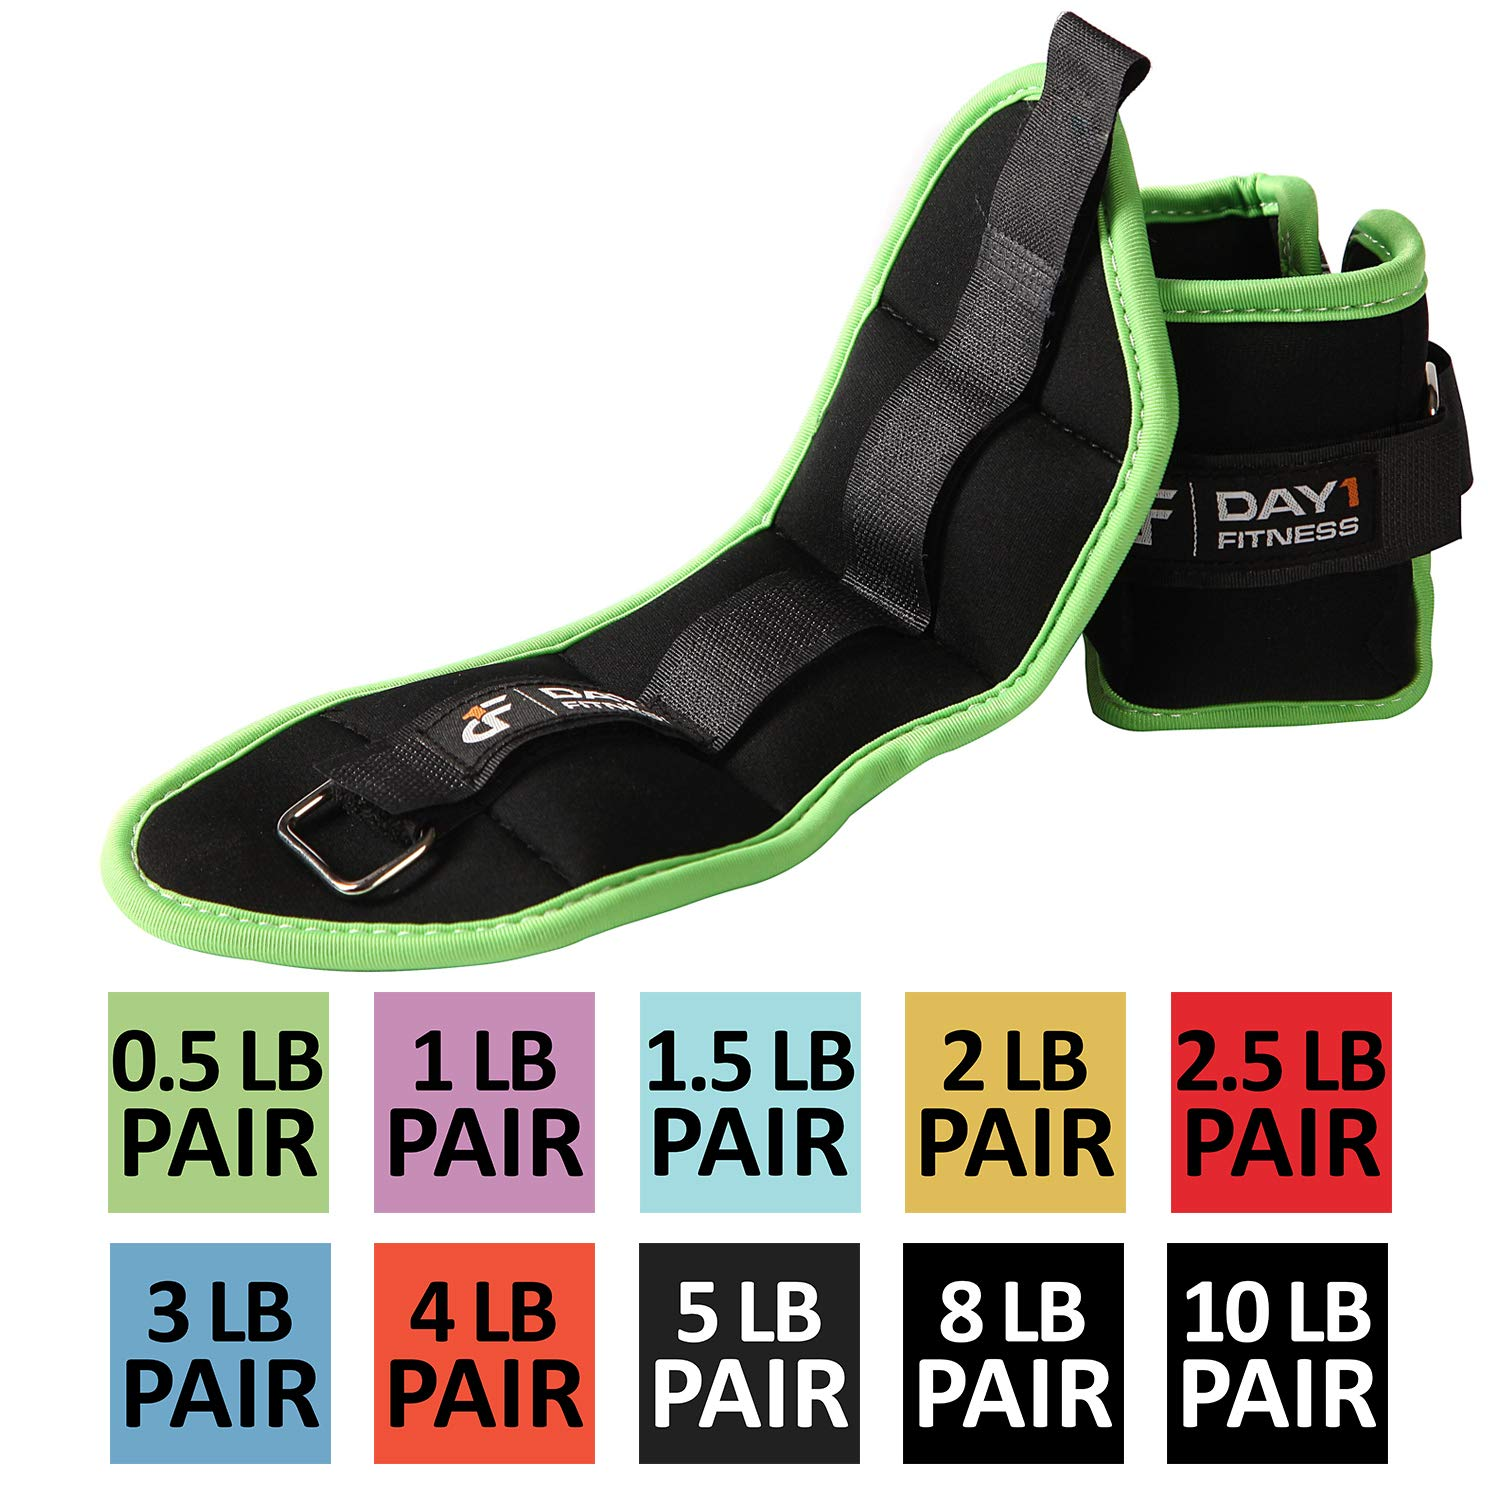 Ankle / Wrist Weight Pair by Day 1 Fitness- 10 Weight and Bundle Options – 0.5 to 10 lbs EACH, Set of 2, Adjustable…